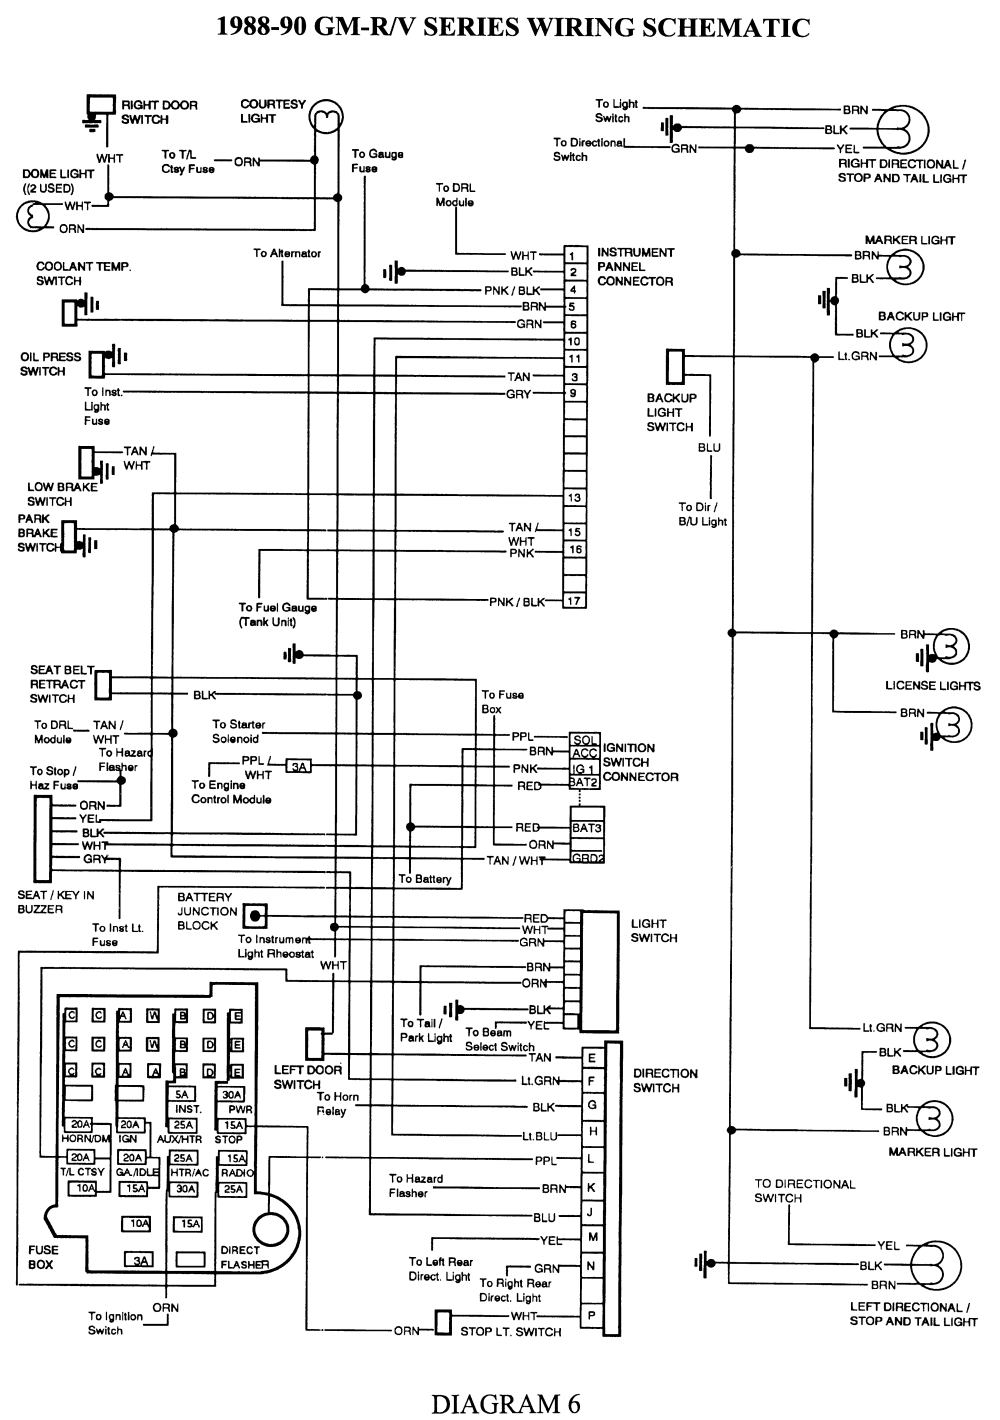 chevy suburban wiring harness 1998 chevy suburban wiring harness 2003 chevy suburban wiring diagram | free wiring diagram